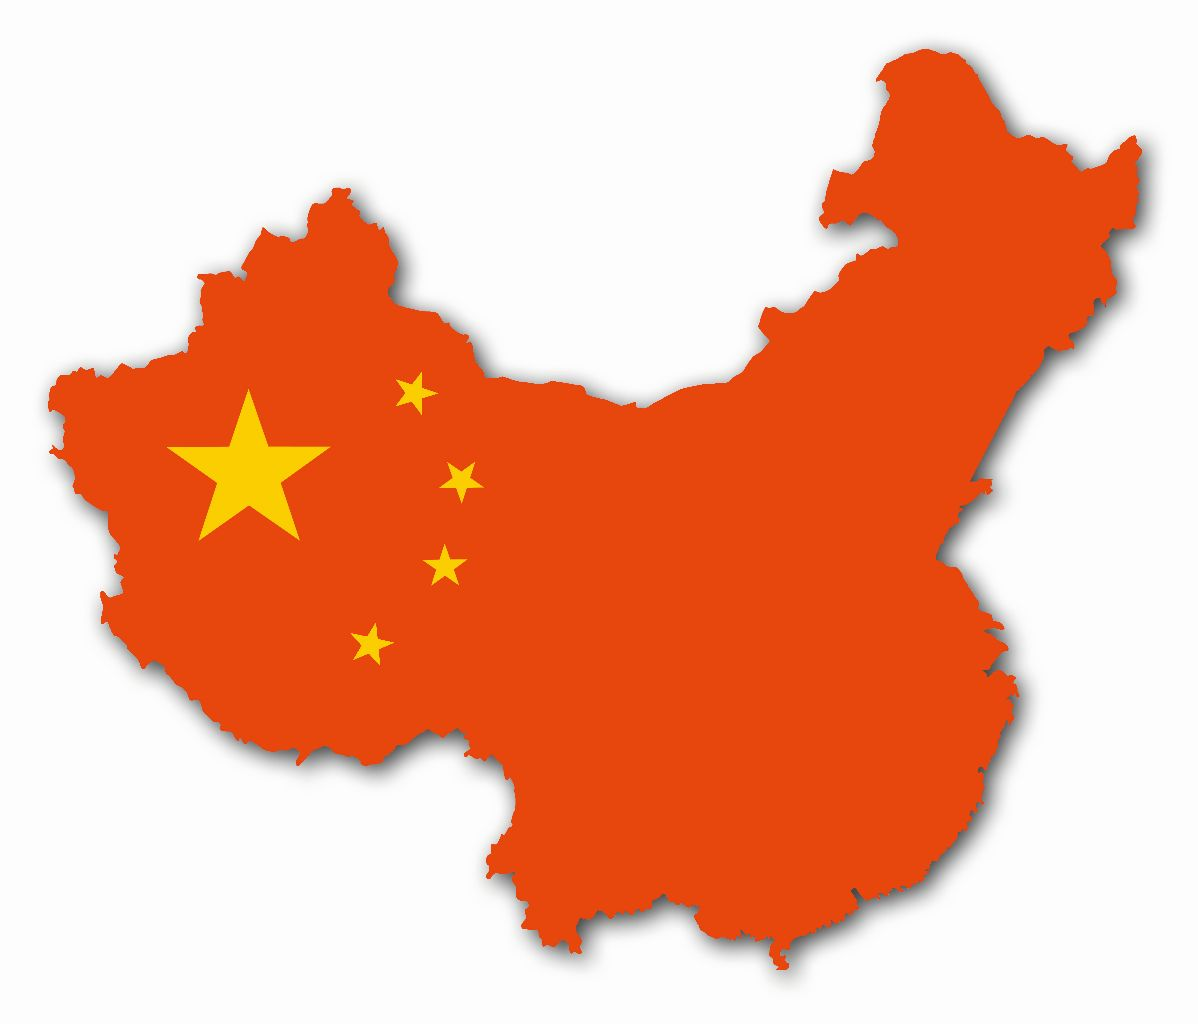 Map of China in Red with yellow stars in the left upper corner of the country